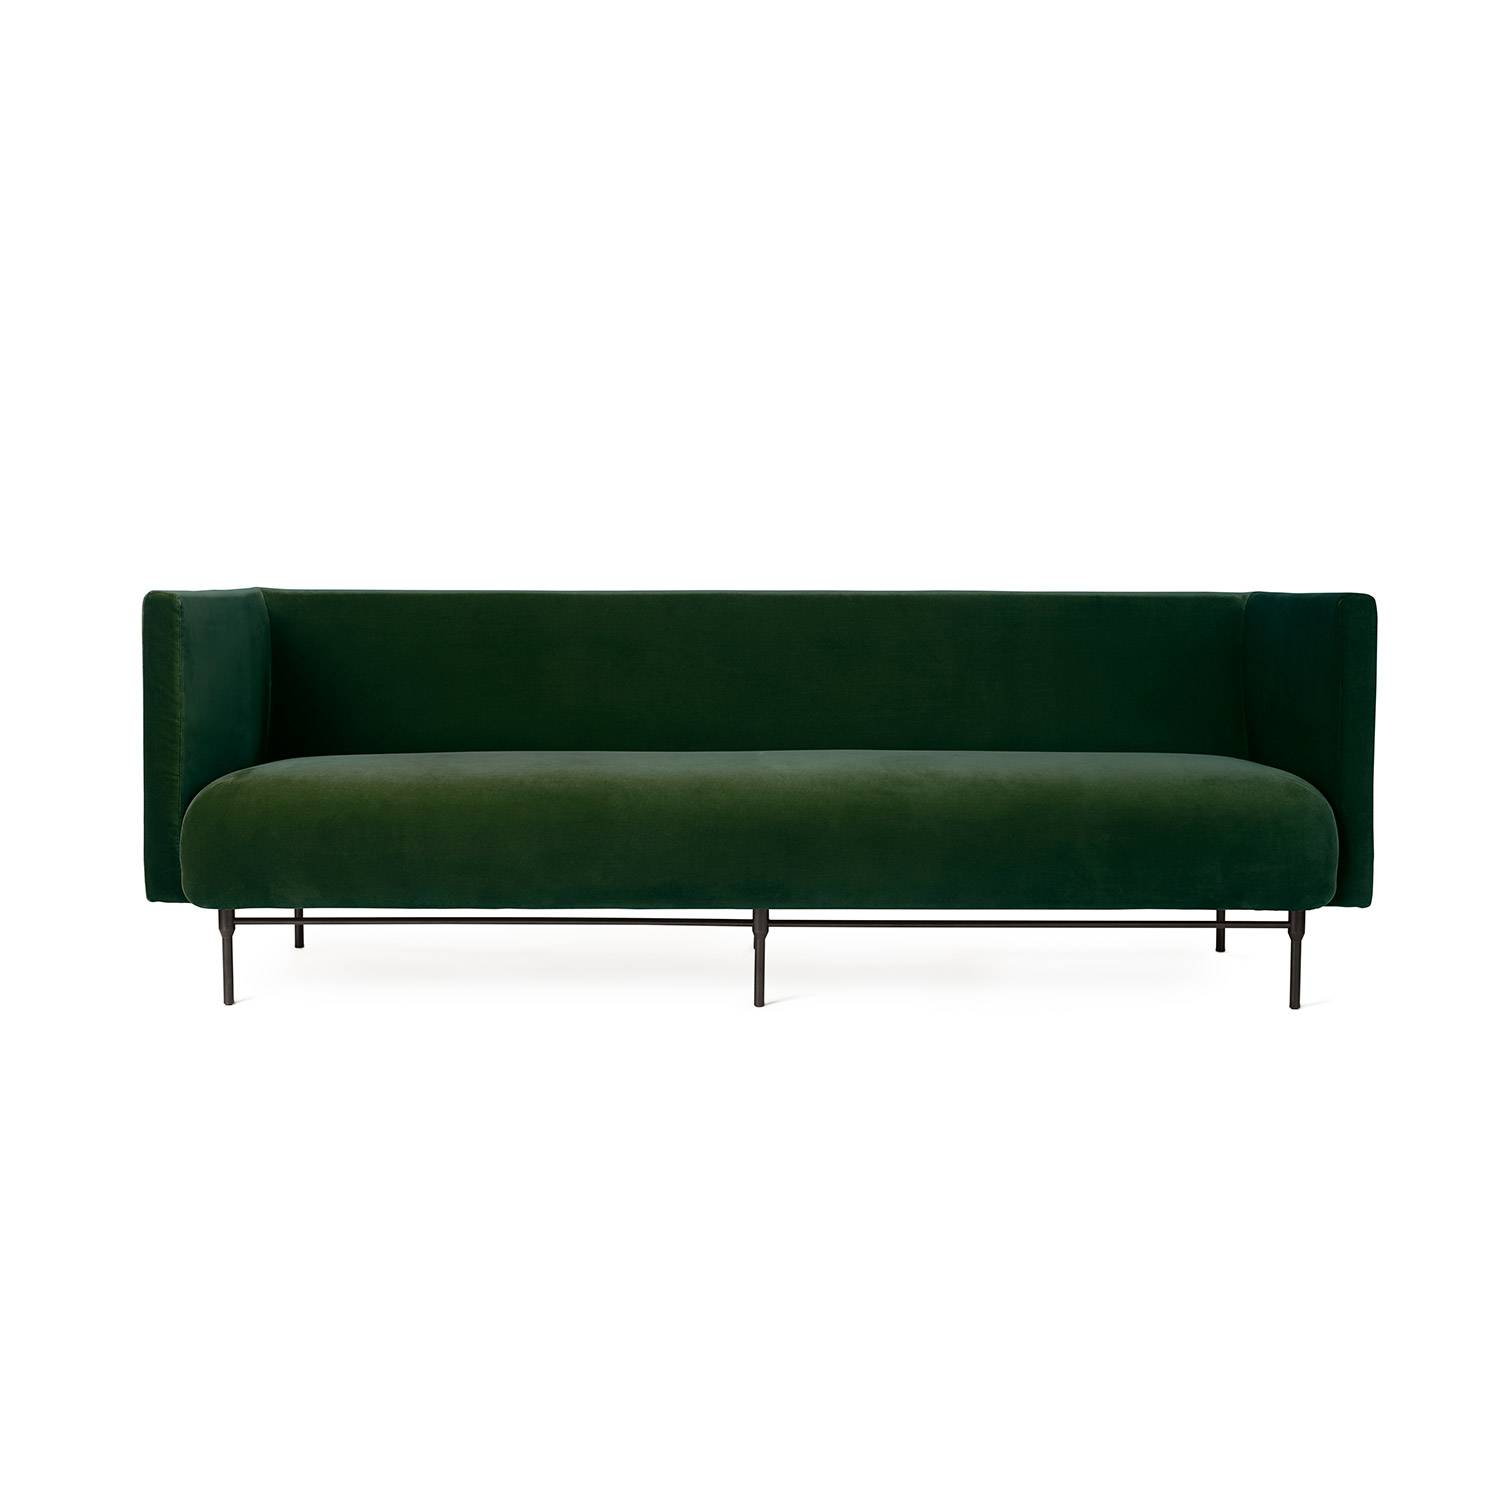 Warm Nordic-Galore 3-Seters Sofa, Forest Green